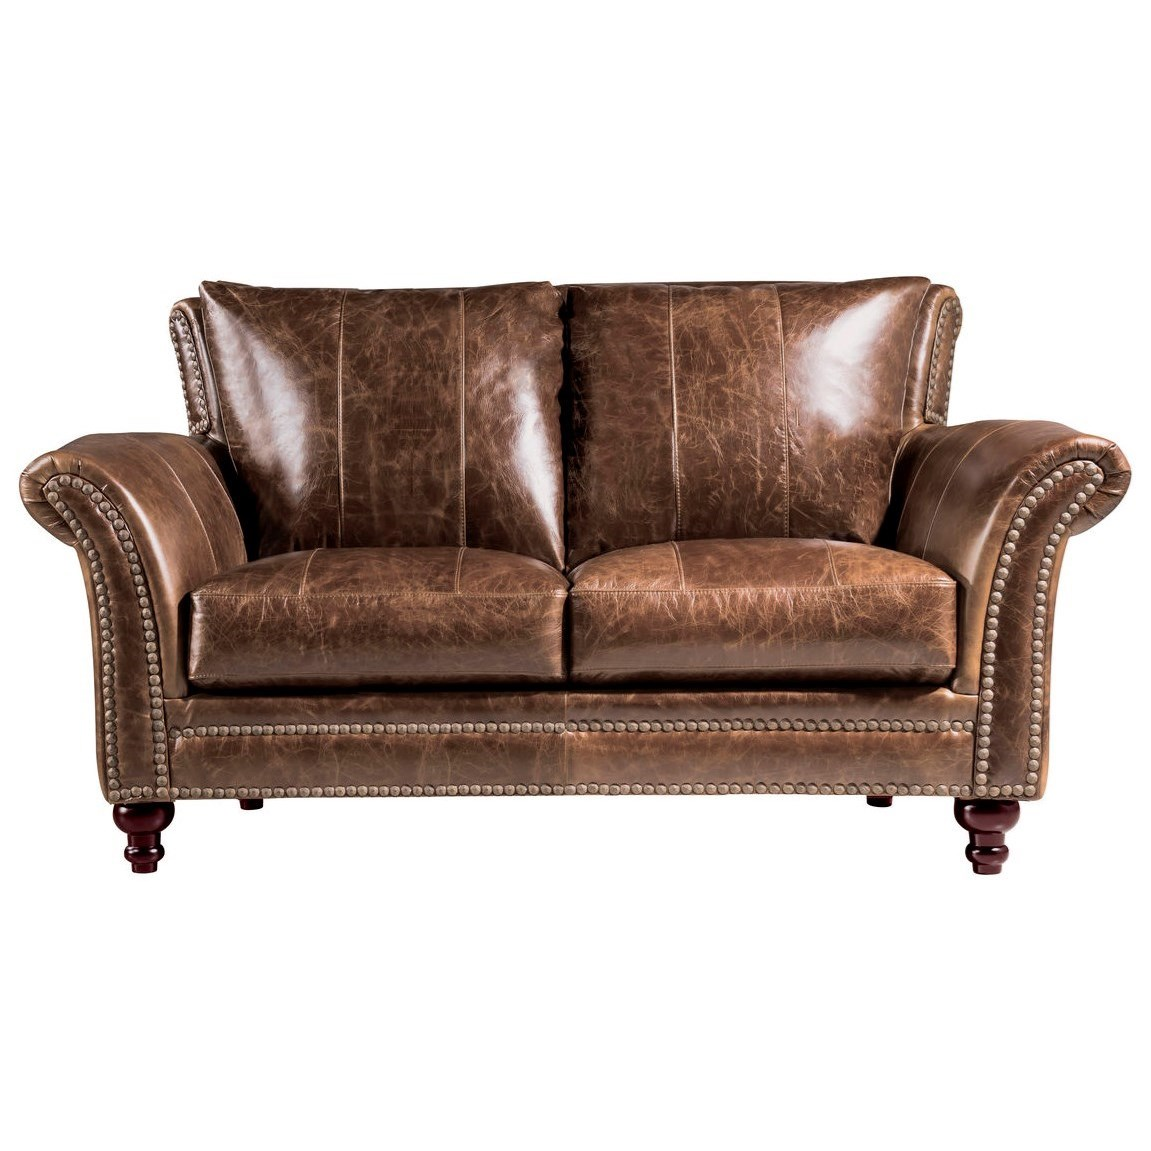 Georgetowne - Butler Leather Loveseat by Leather Italia USA at Johnny Janosik